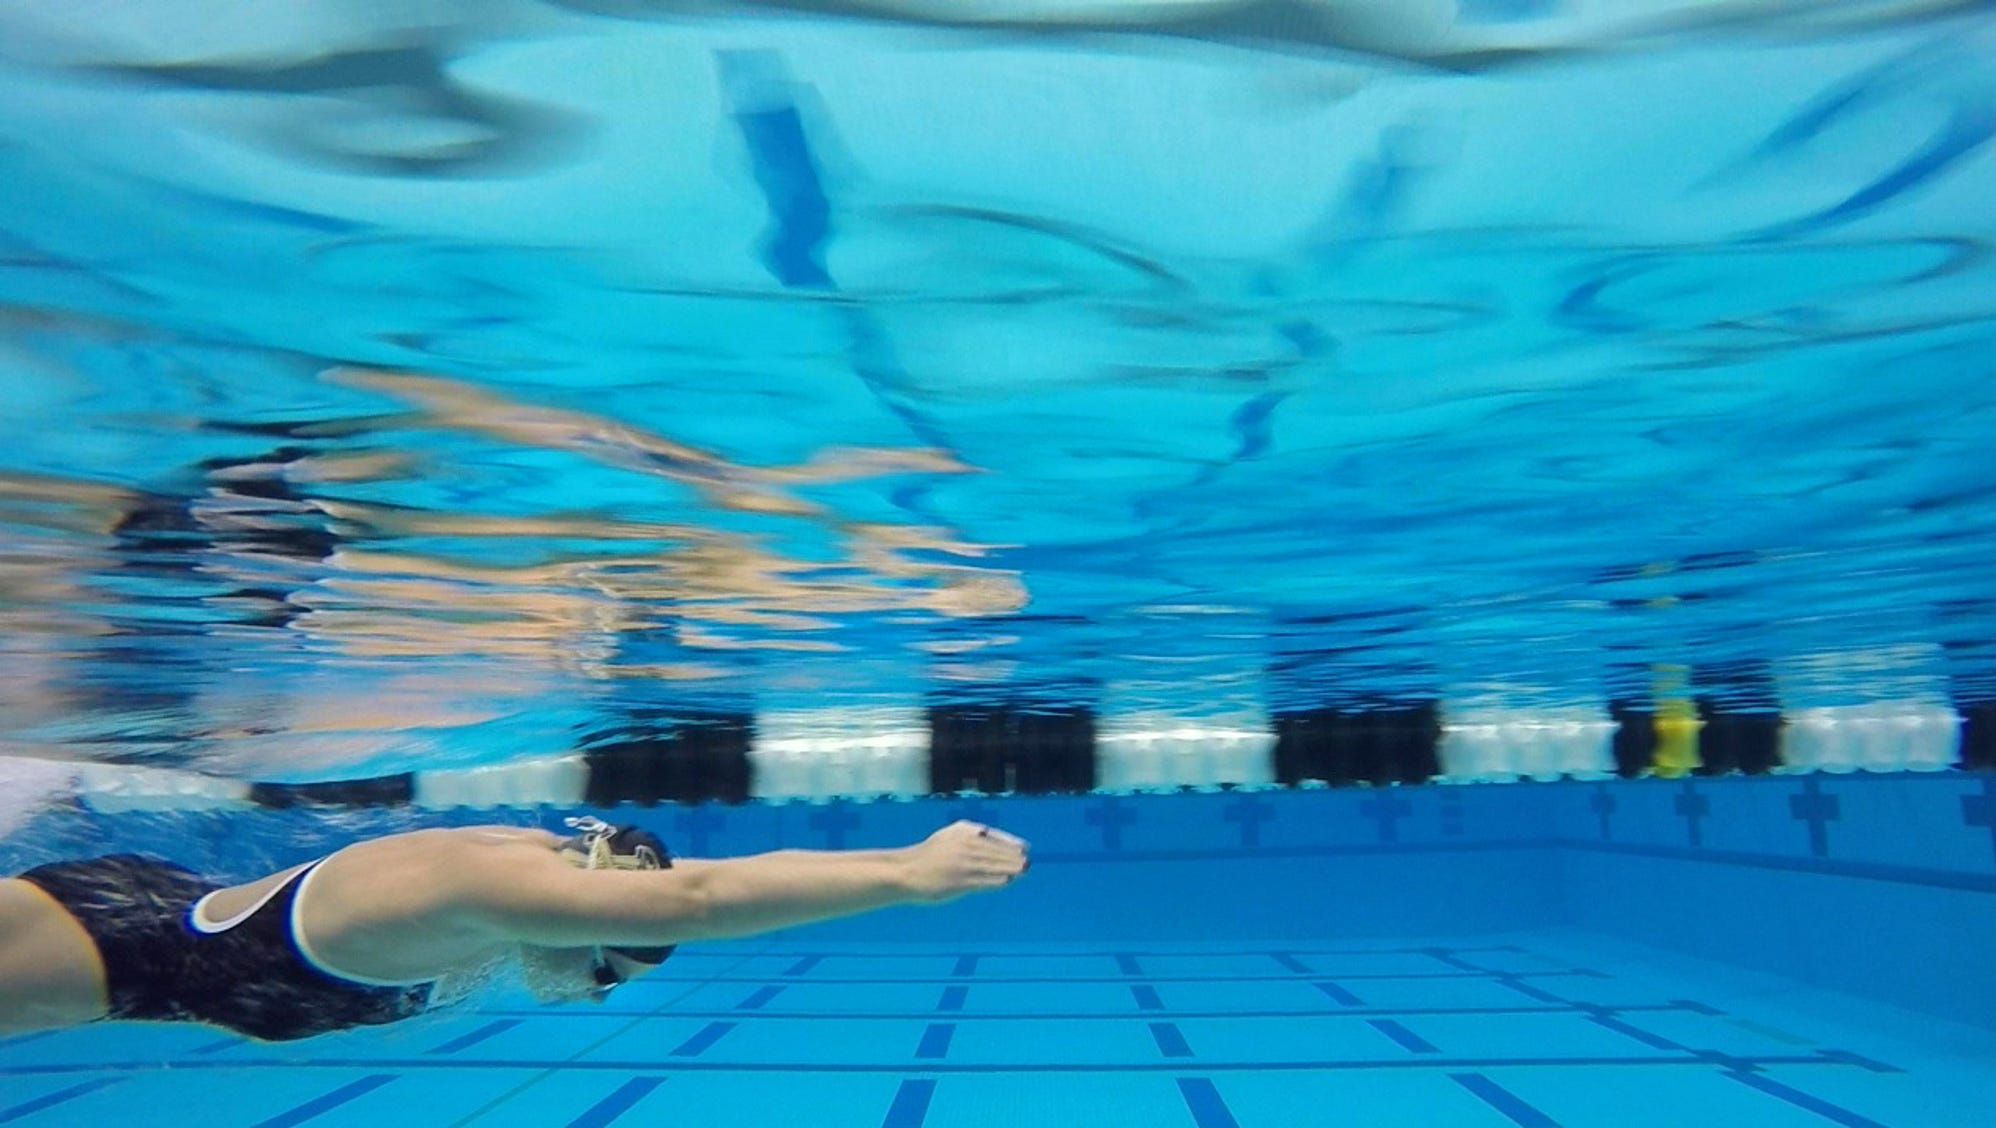 Purdue Swimmer On Top After Anorexia Injuries